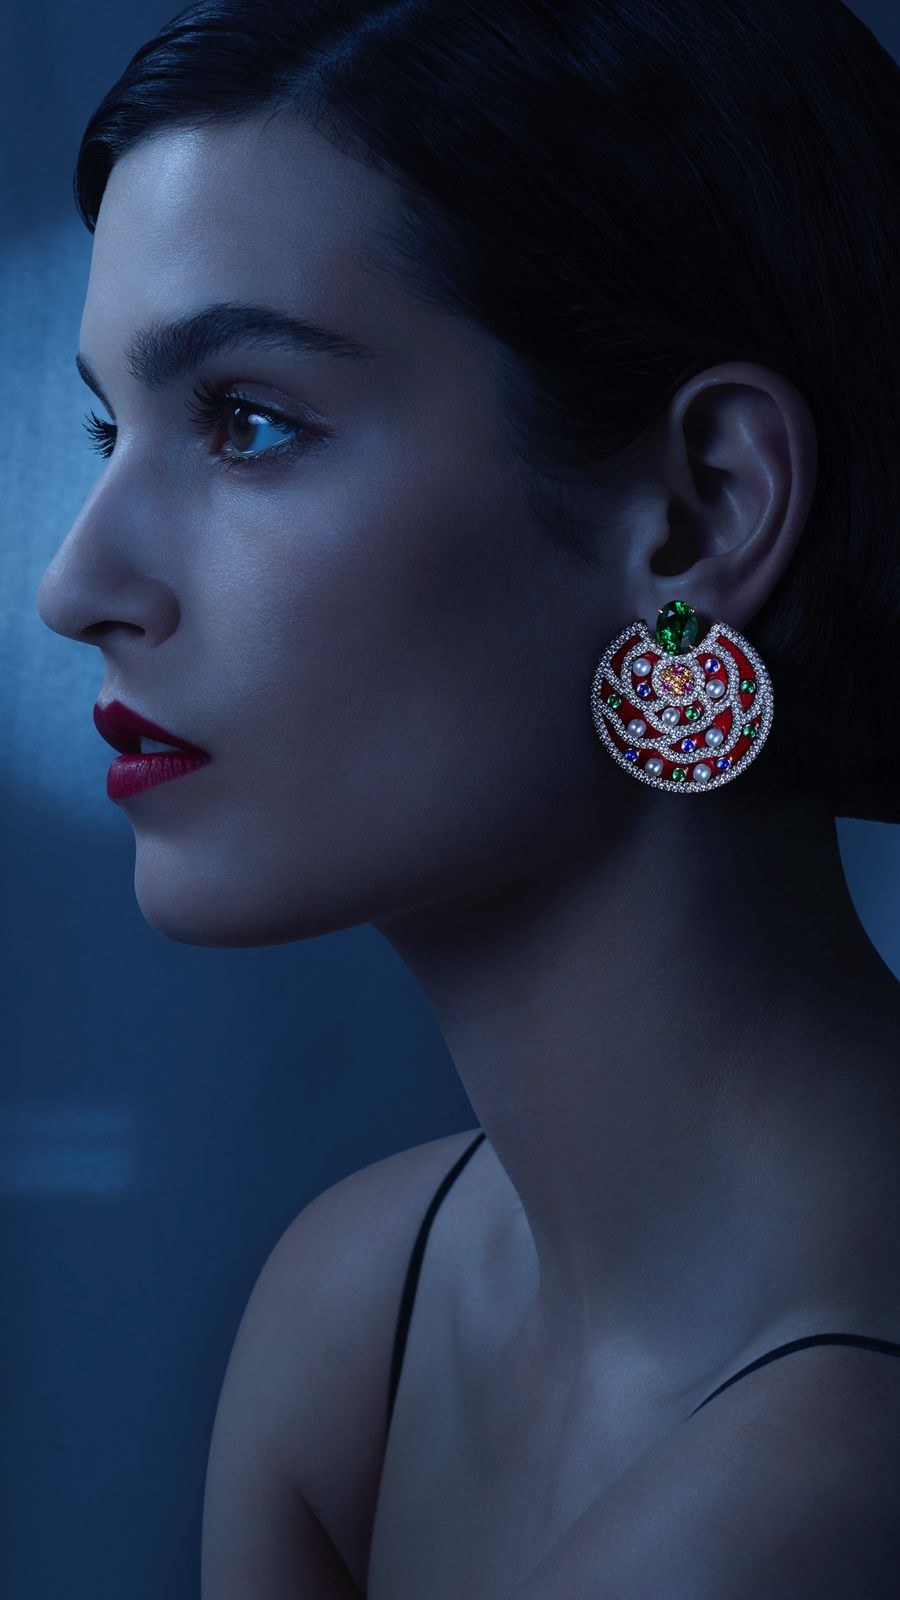 The model wearing the folflore earrings